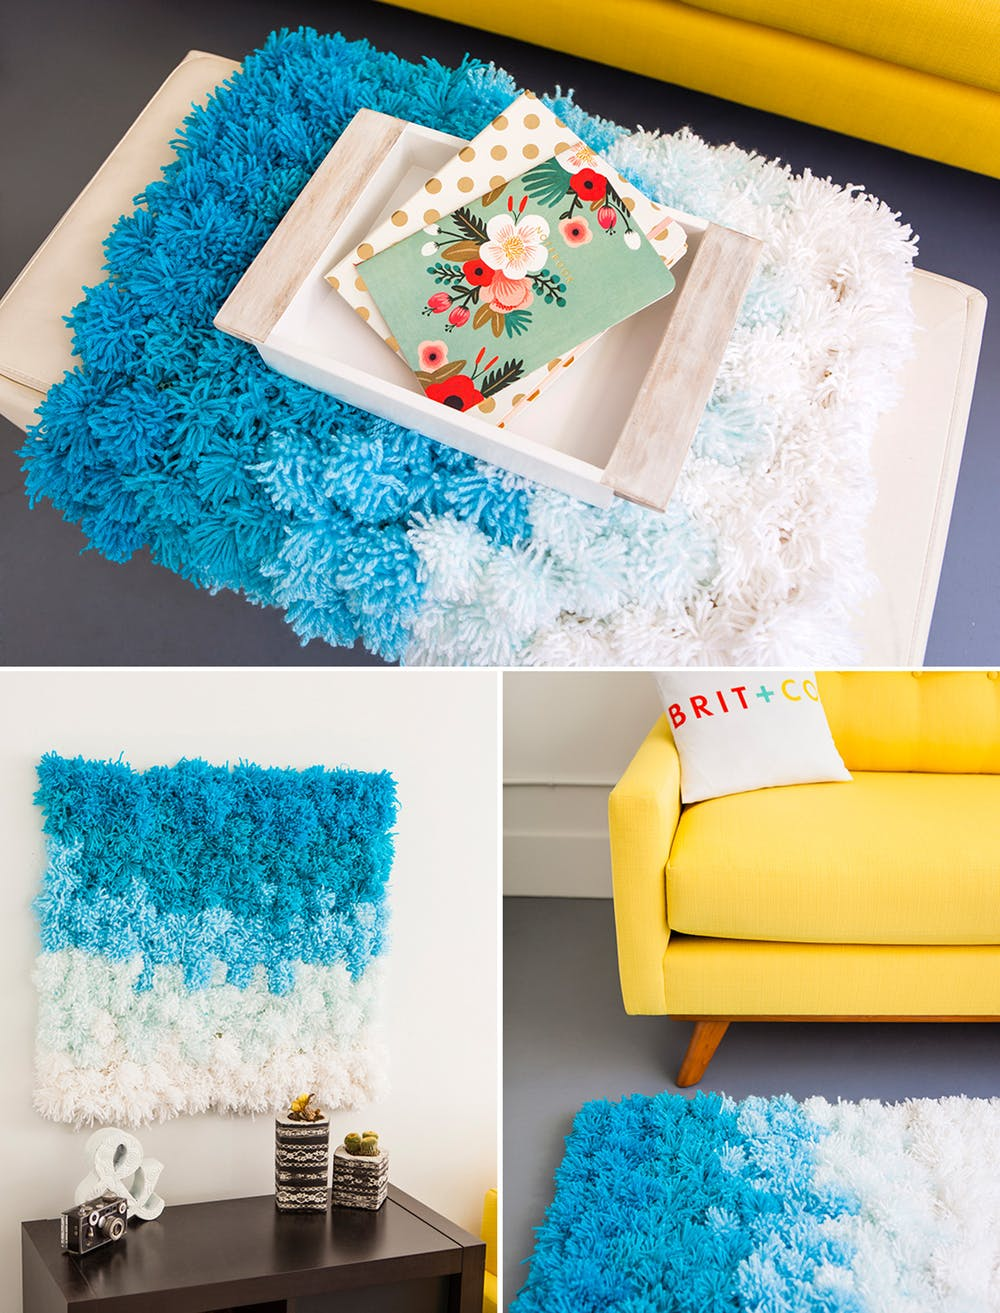 Easy 6 Step Rug Steps For Making A Uneven And Fluffy Pom